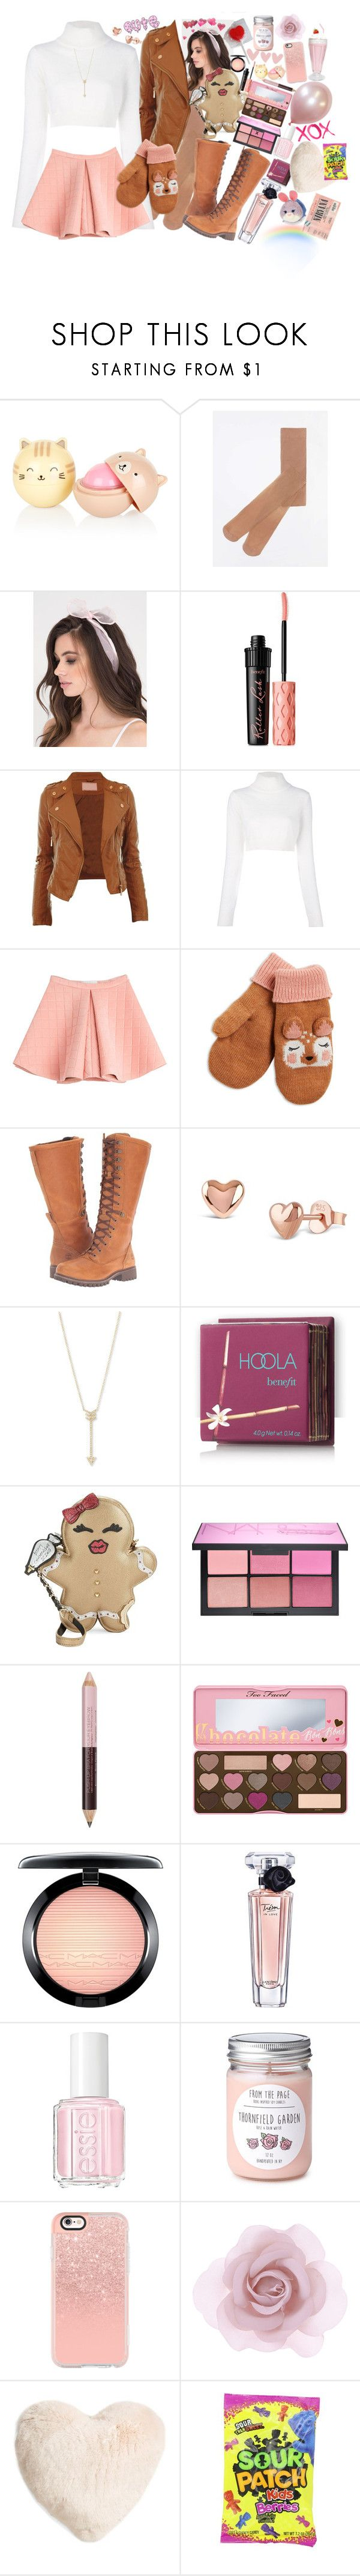 """""""Sweet Cold👑😻"""" by axelyamary ❤ liked on Polyvore featuring Dorothy Perkins, Benefit, Balmain, Marina Hoermanseder, Timberland, Dinny Hall, EF Collection, Hoola, Betsey Johnson and NARS Cosmetics"""